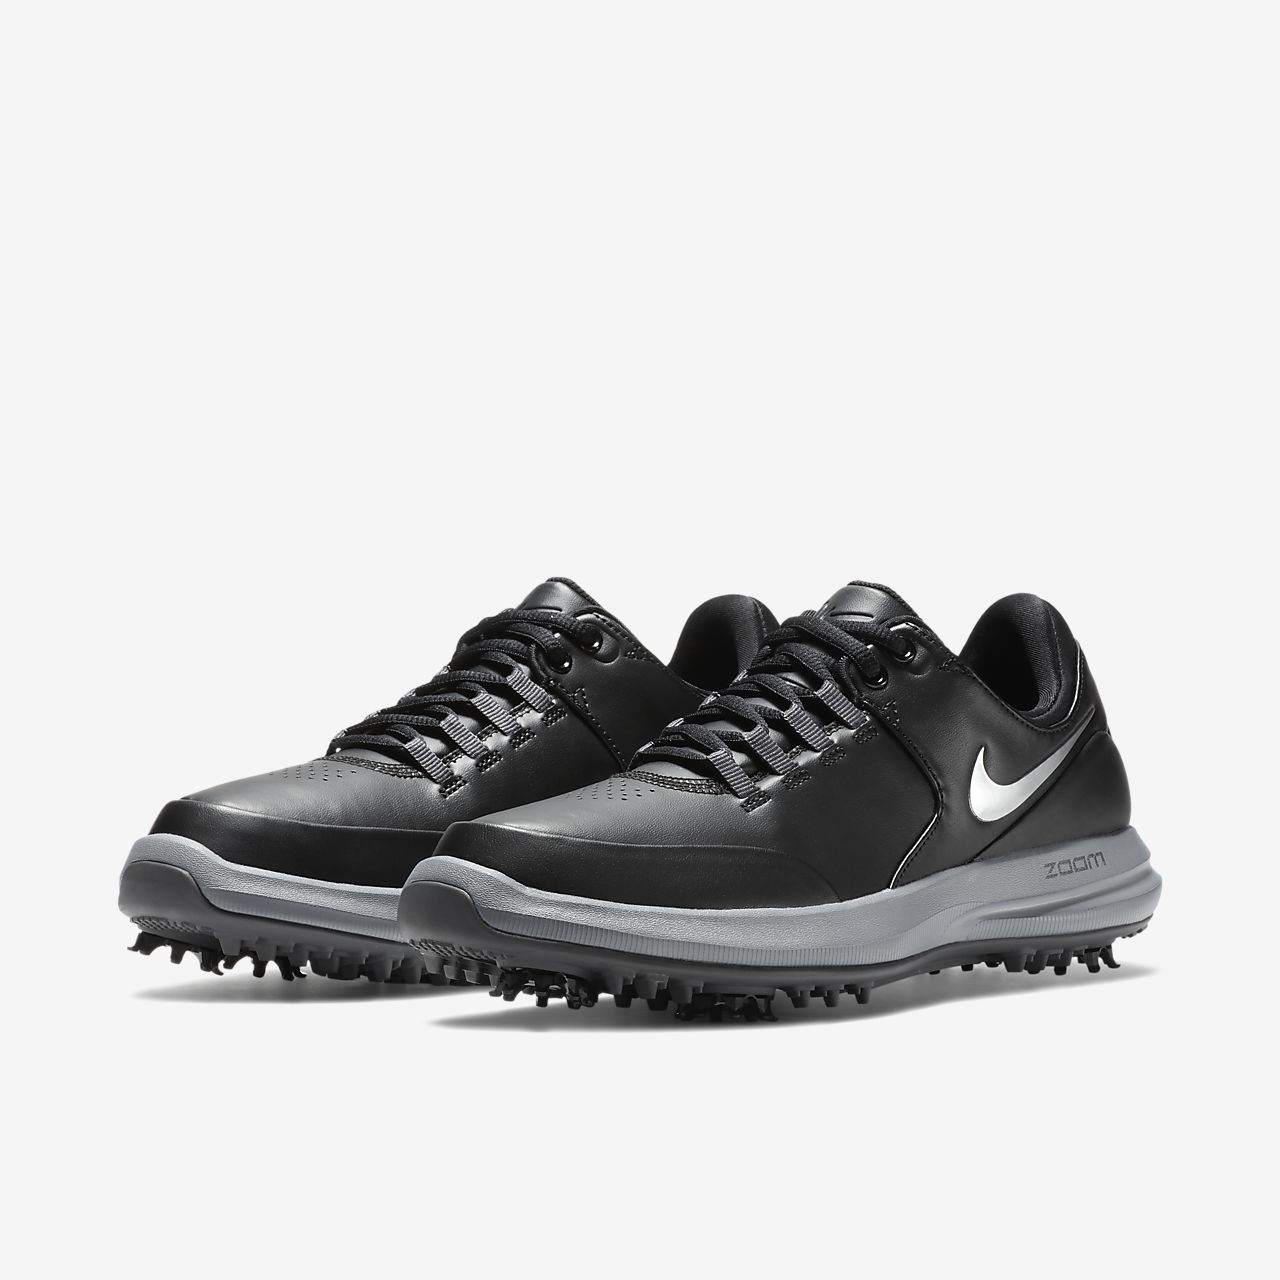 on sale 6ec04 d819f ... Nike Air Zoom Accurate Women s Golf Shoe